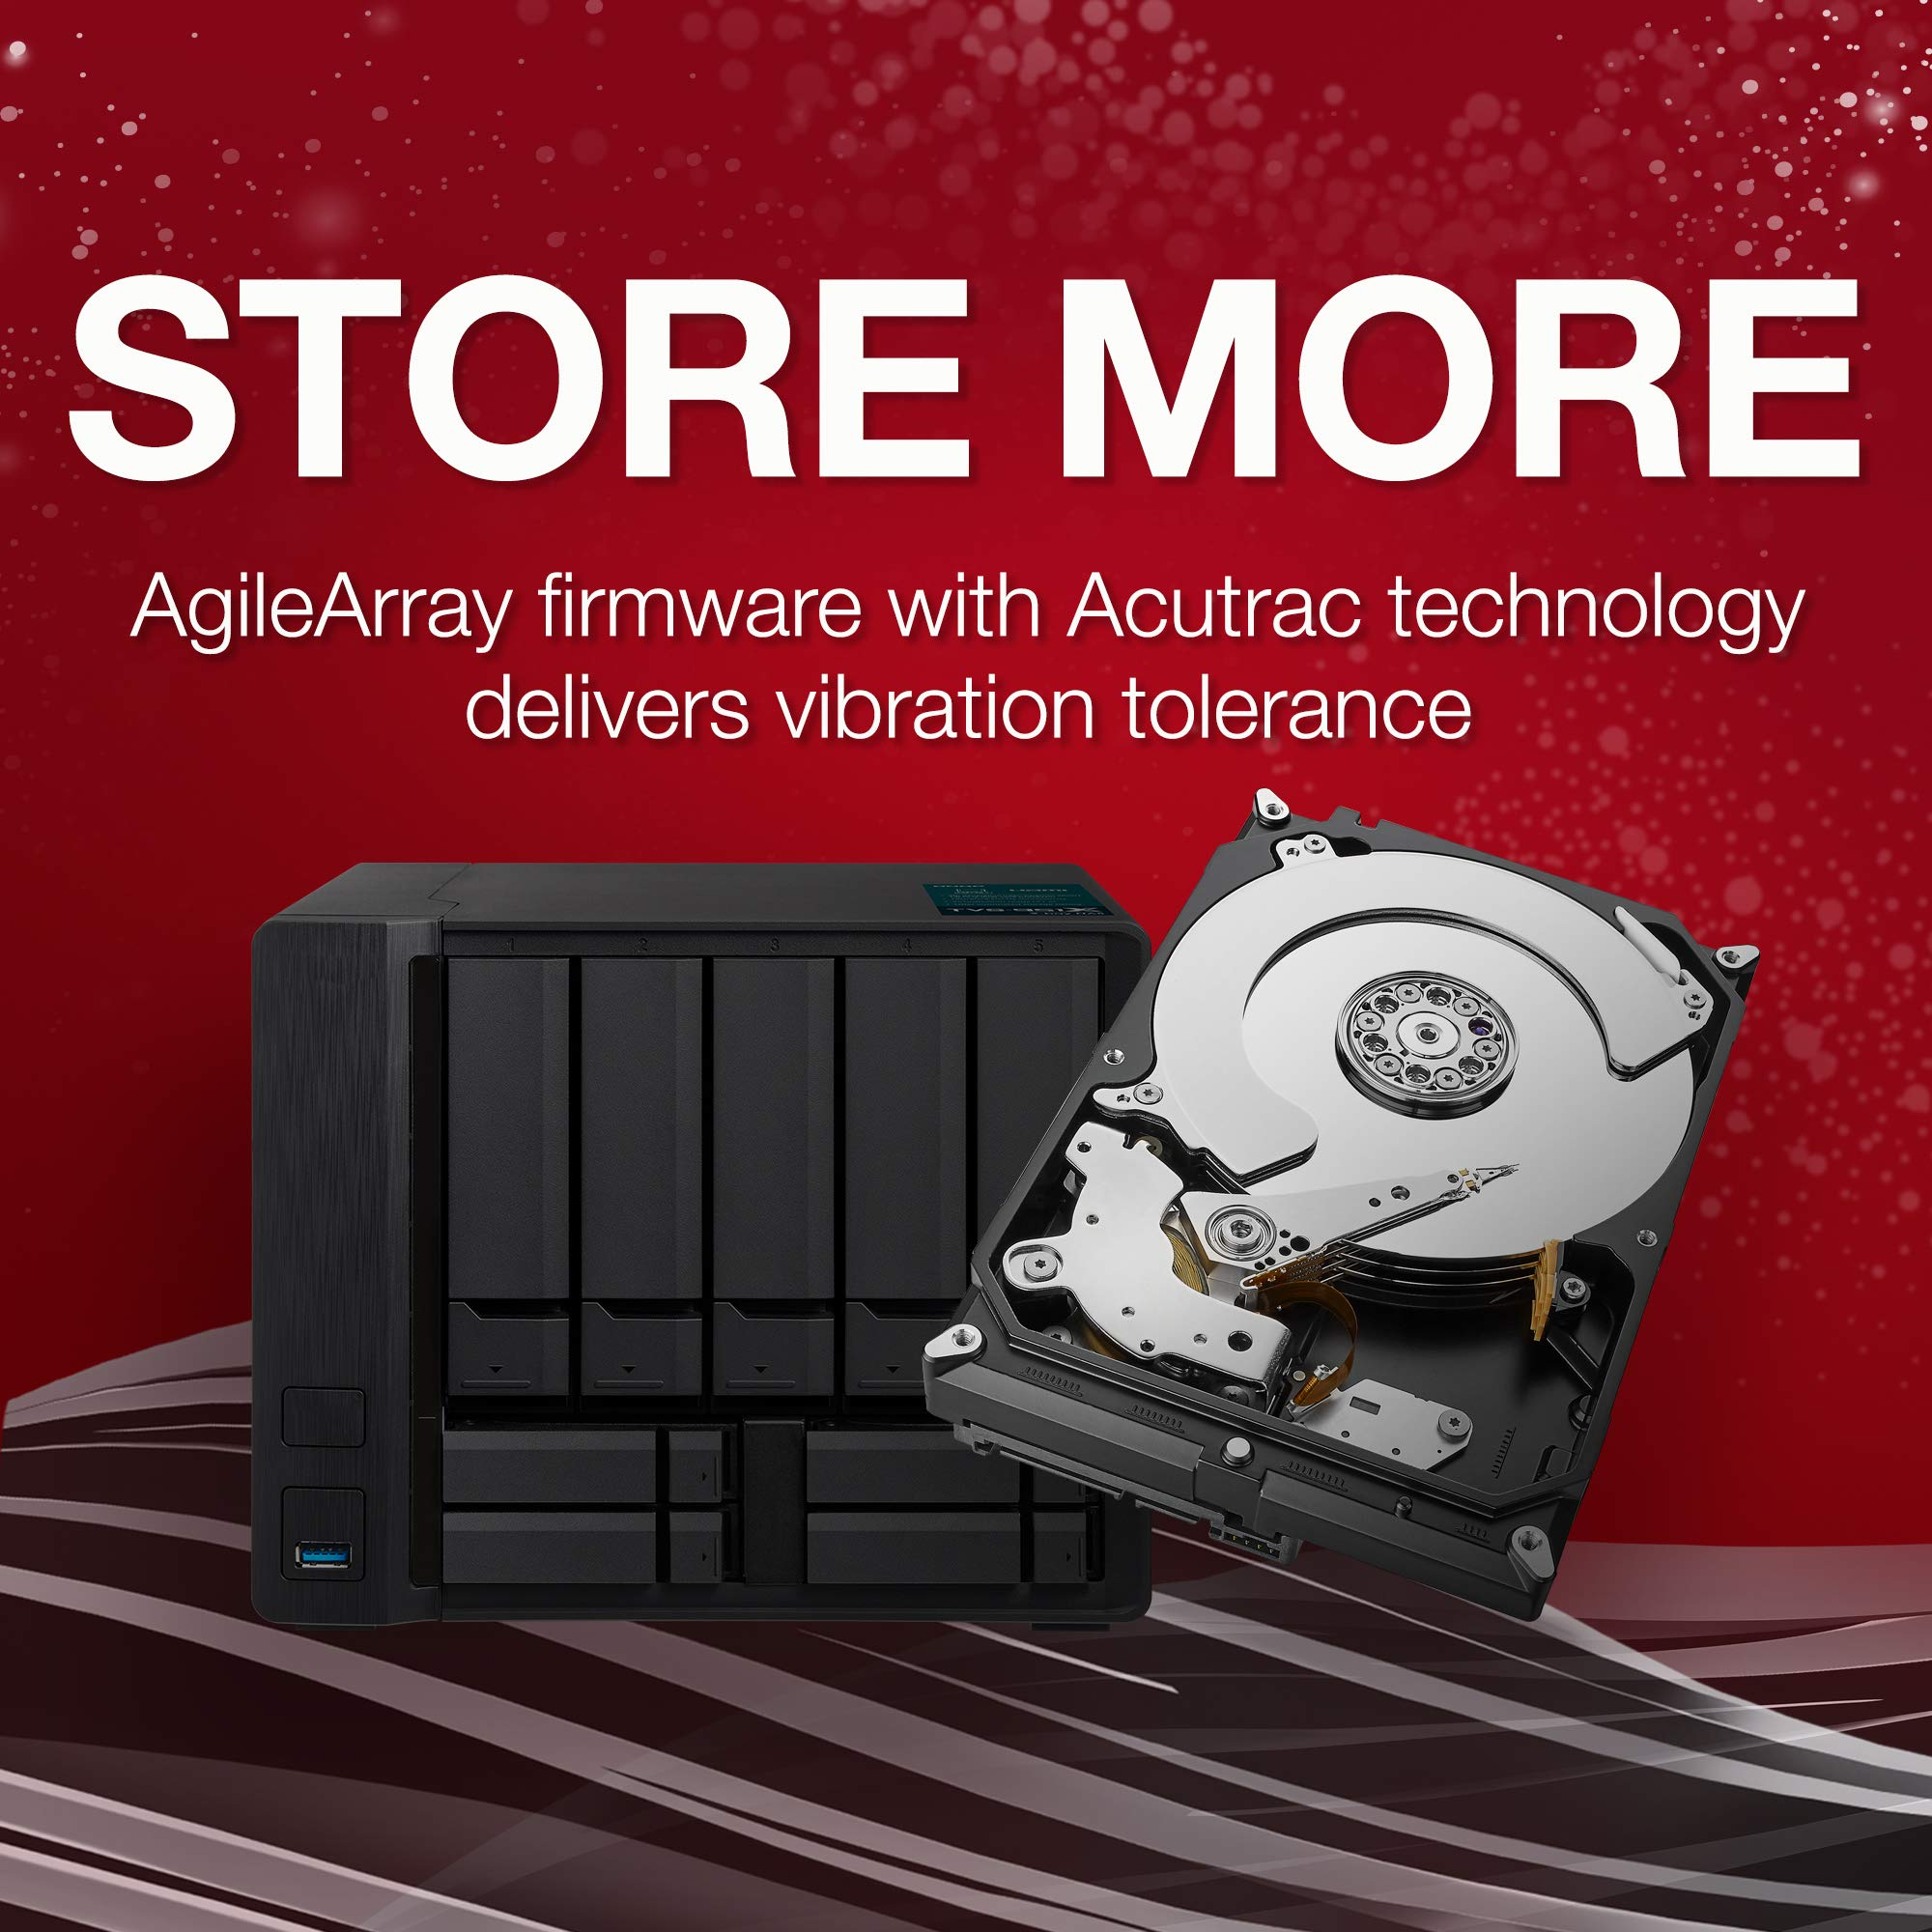 Seagate IronWolf 4TB NAS Internal Hard Drive HDD - 3.5 Inch SATA 6Gb/s 5900 RPM 64MB Cache for RAID Network Attached Storage - Frustration Free Packaging (ST4000VN008) by Seagate (Image #4)